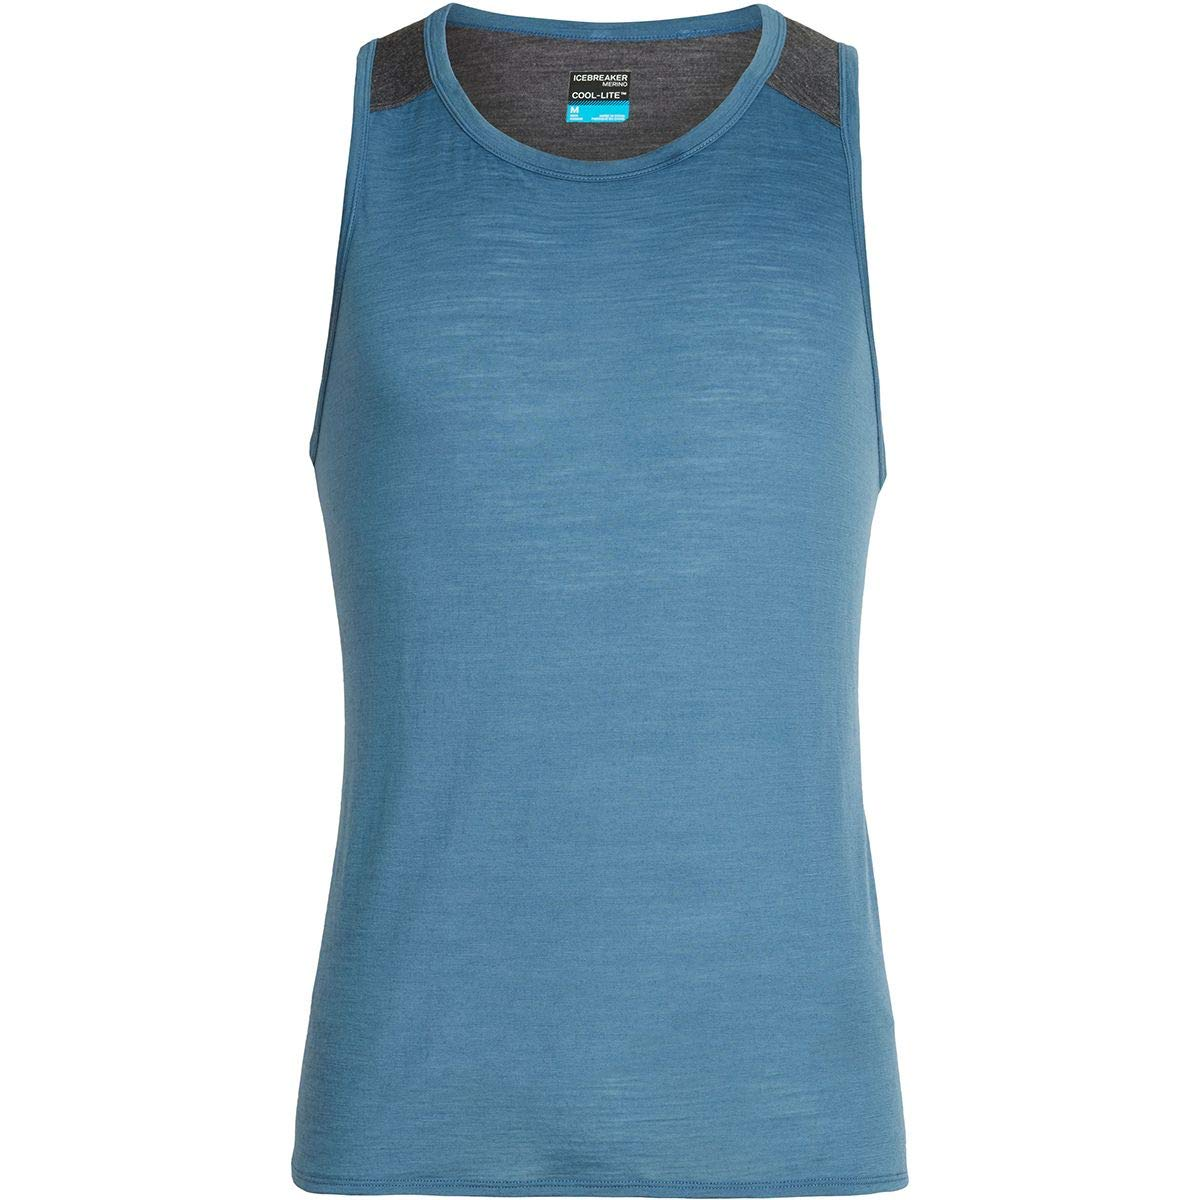 Icebreaker Amplify Tank Top - Men's Thunder/Panther Heather, M by Icebreaker